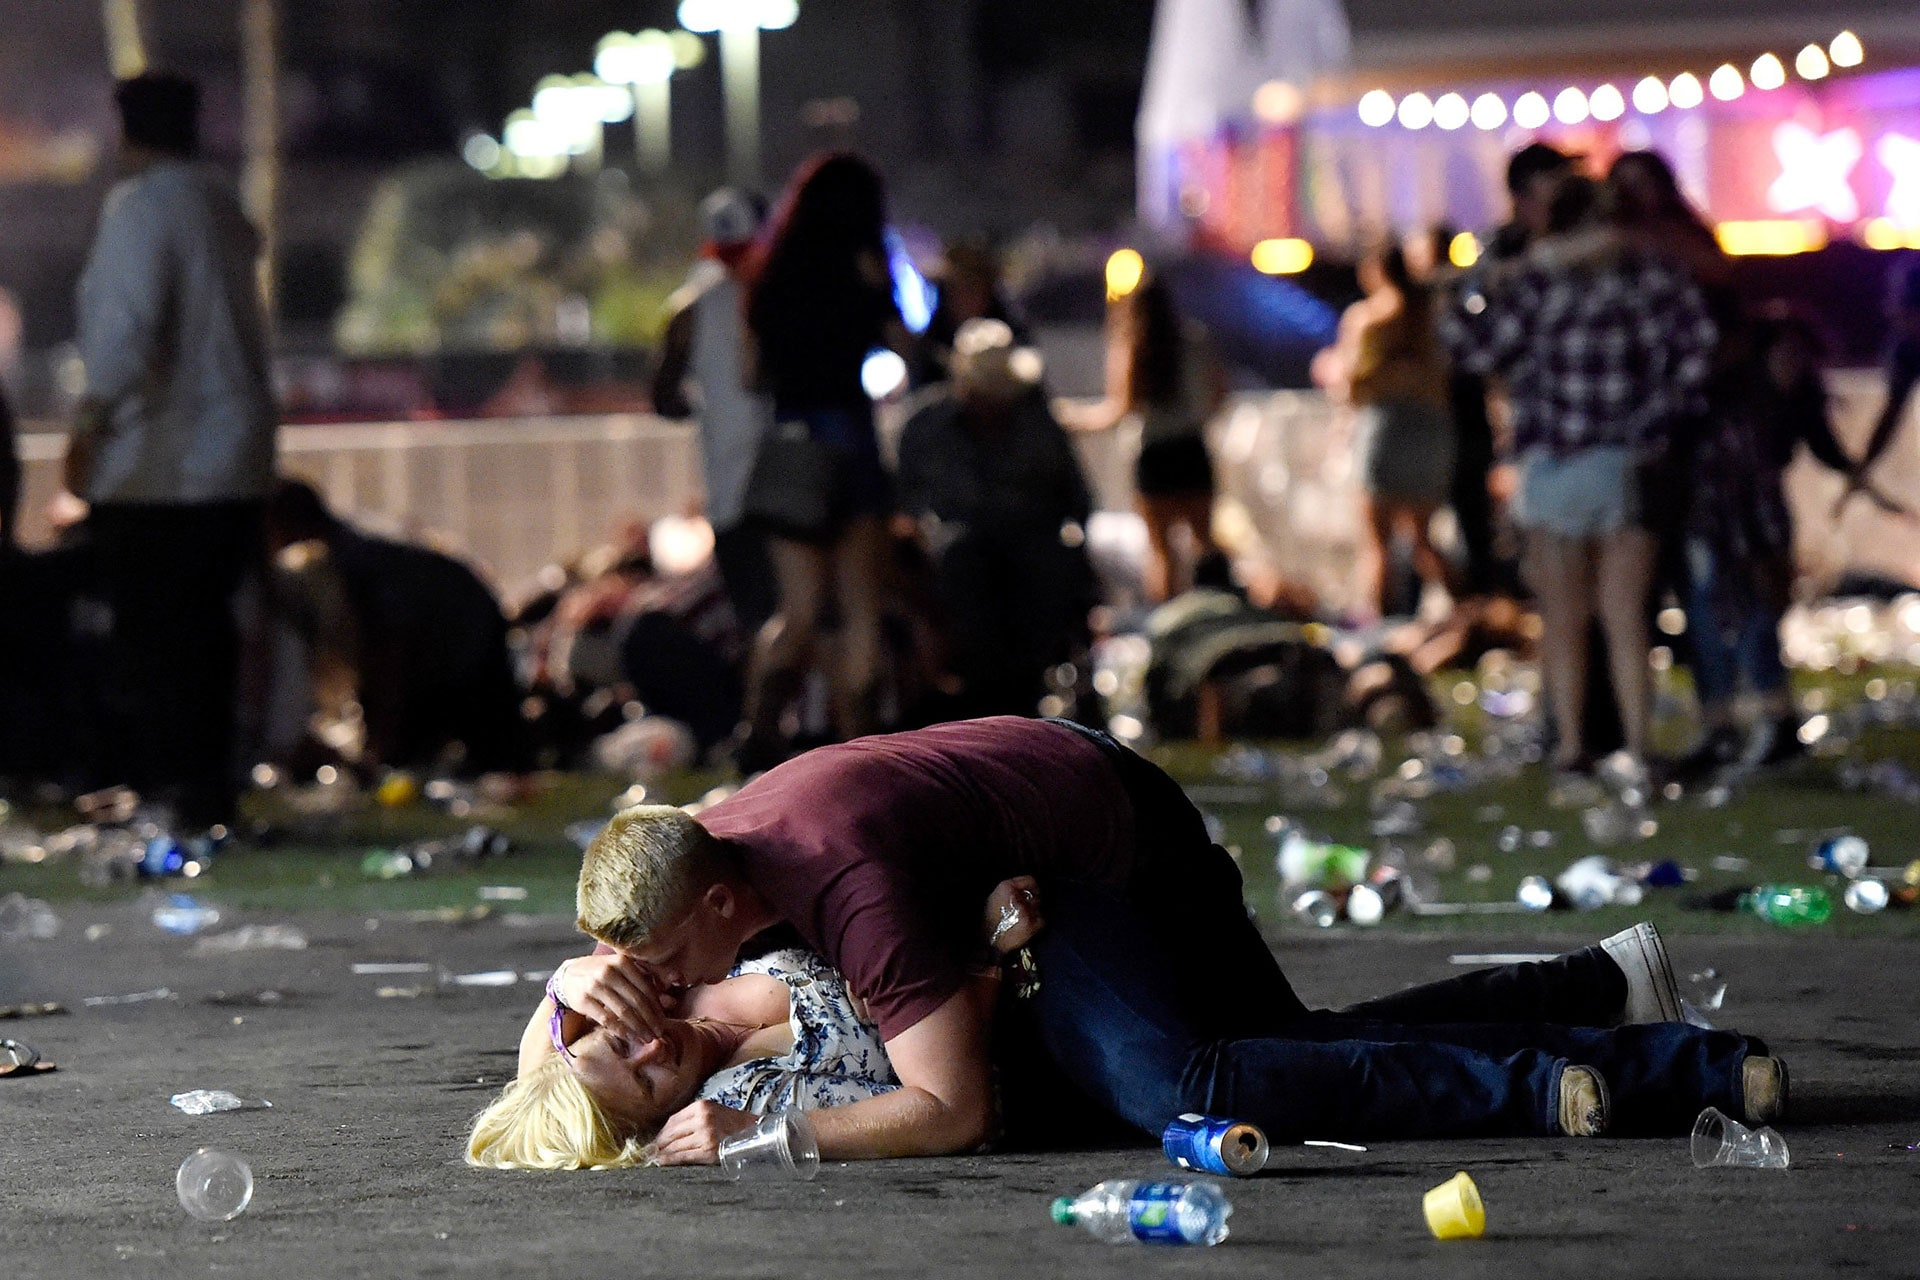 A man shields a woman during a mass shooting at the Route 91 Harvest country music festival